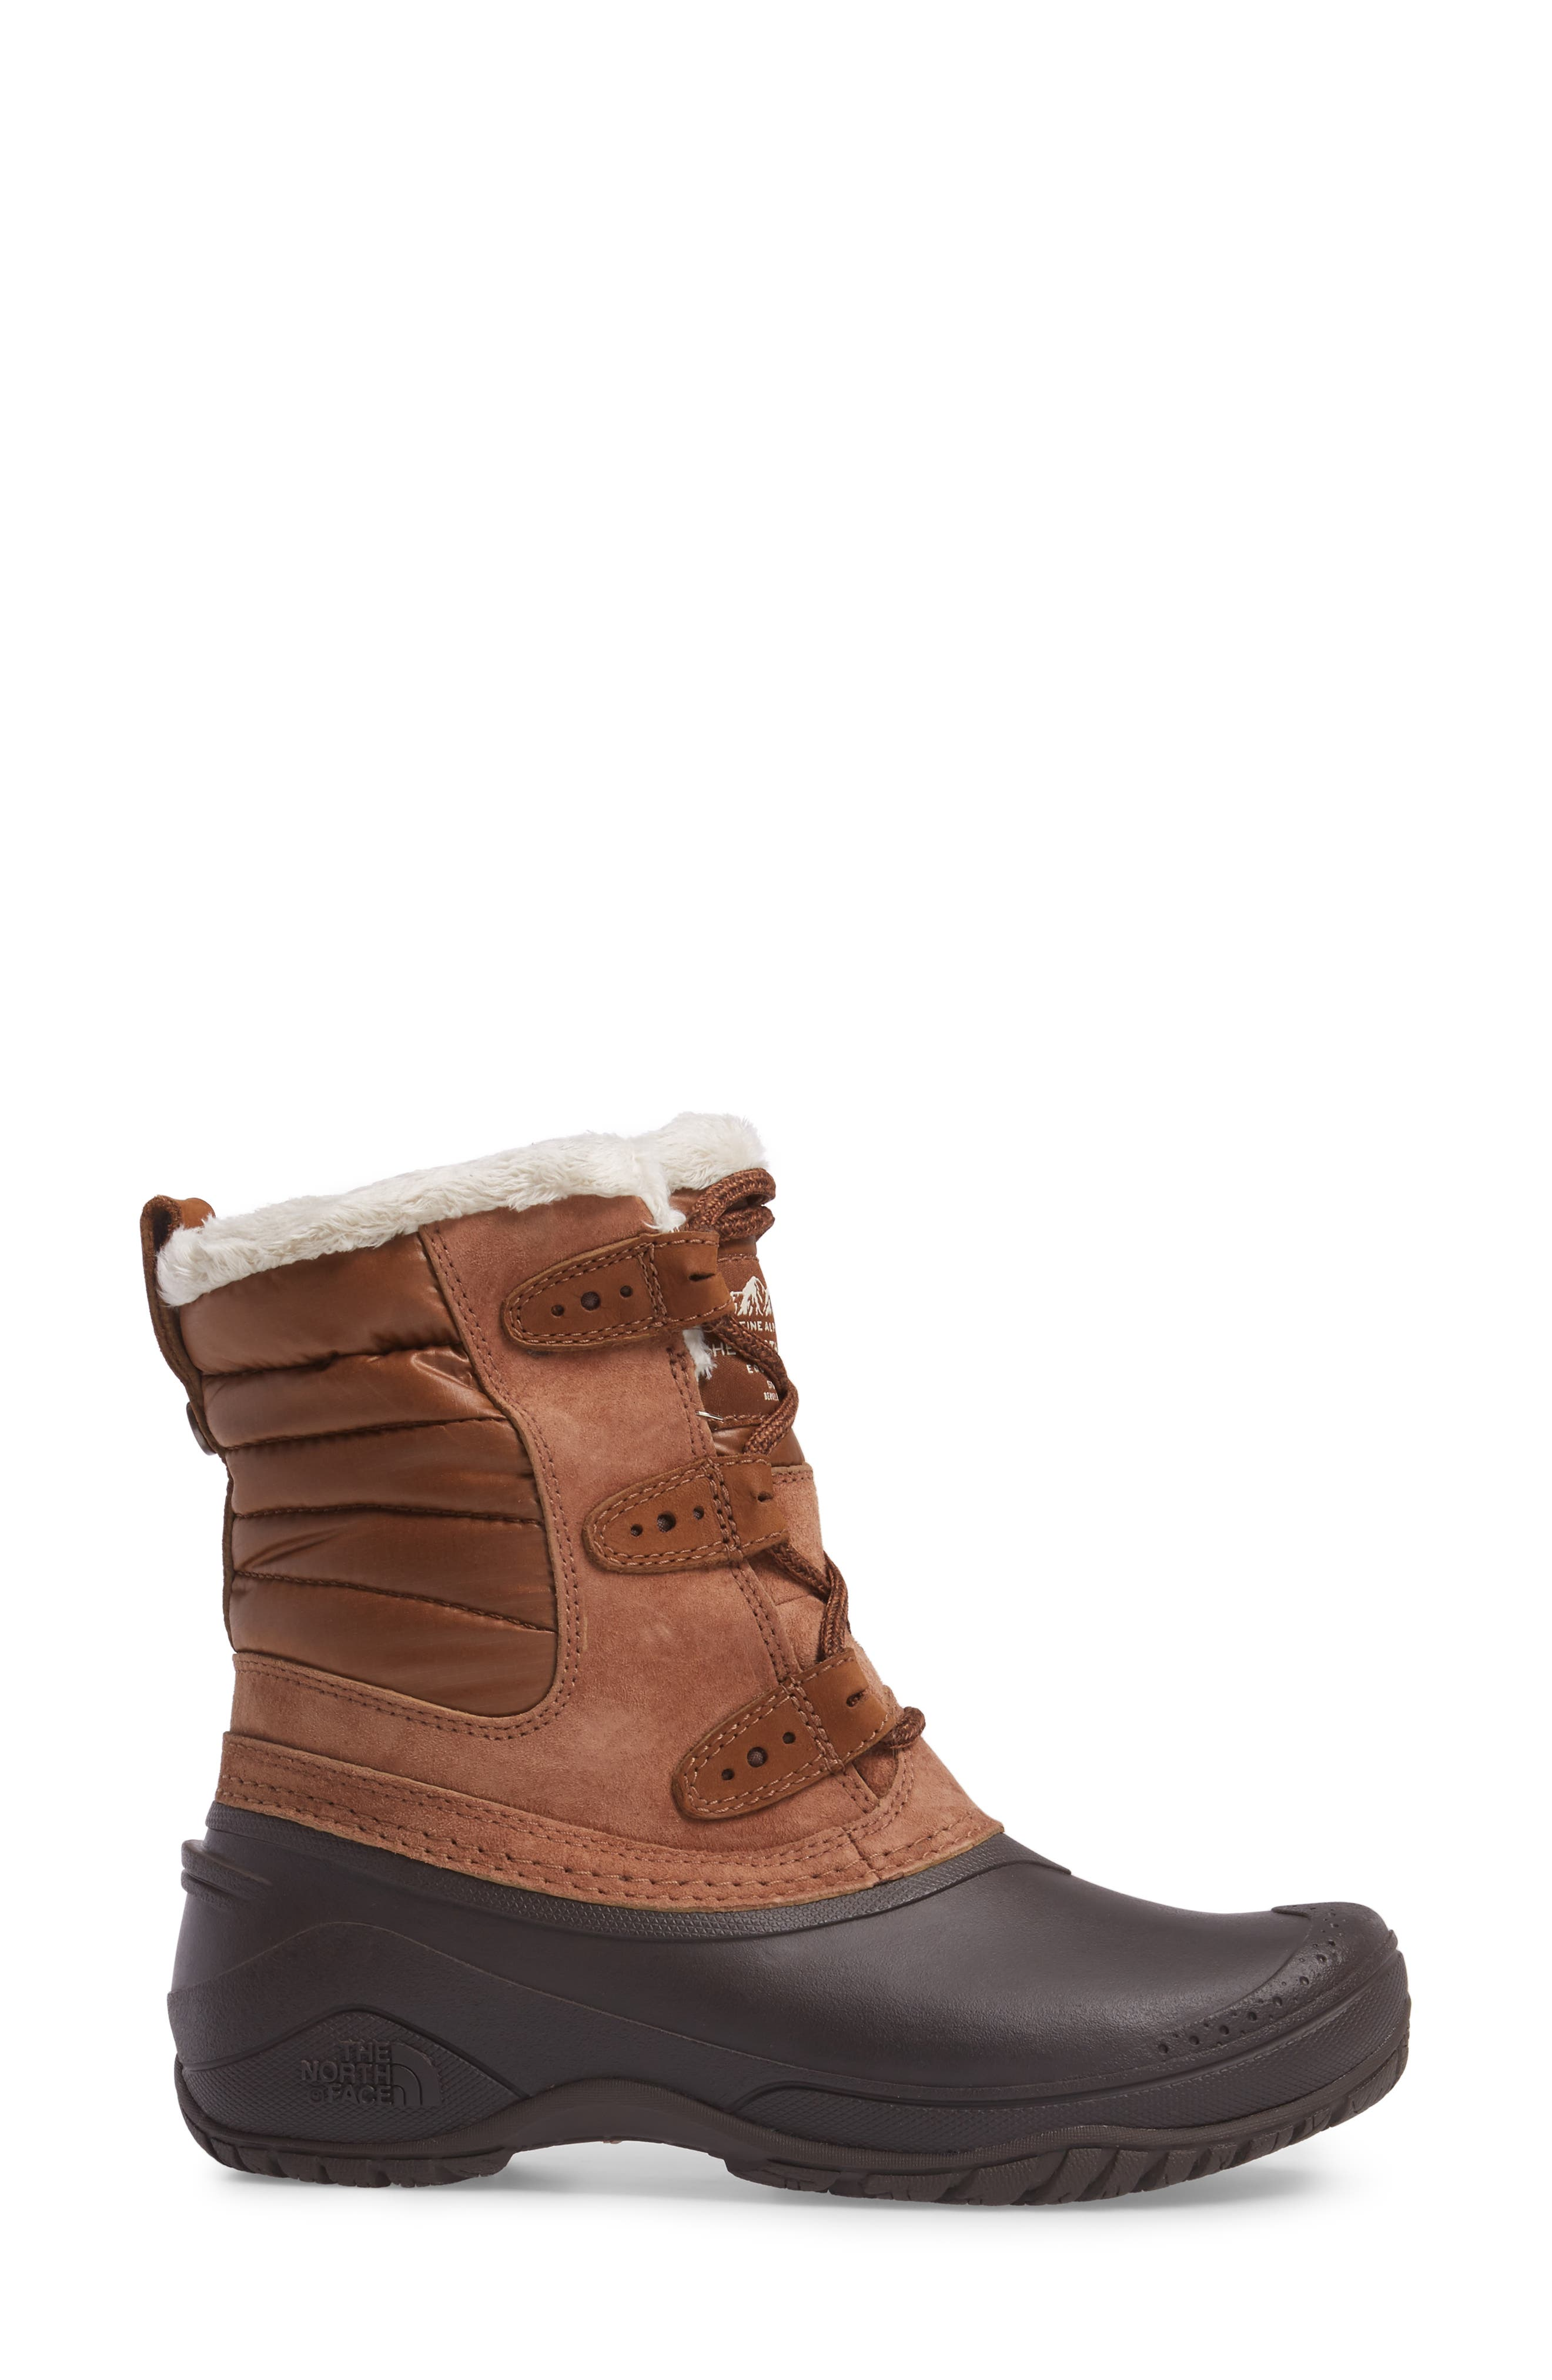 Shellista II Waterproof Boot,                             Alternate thumbnail 3, color,                             Dachshund Brown/ Vintage White